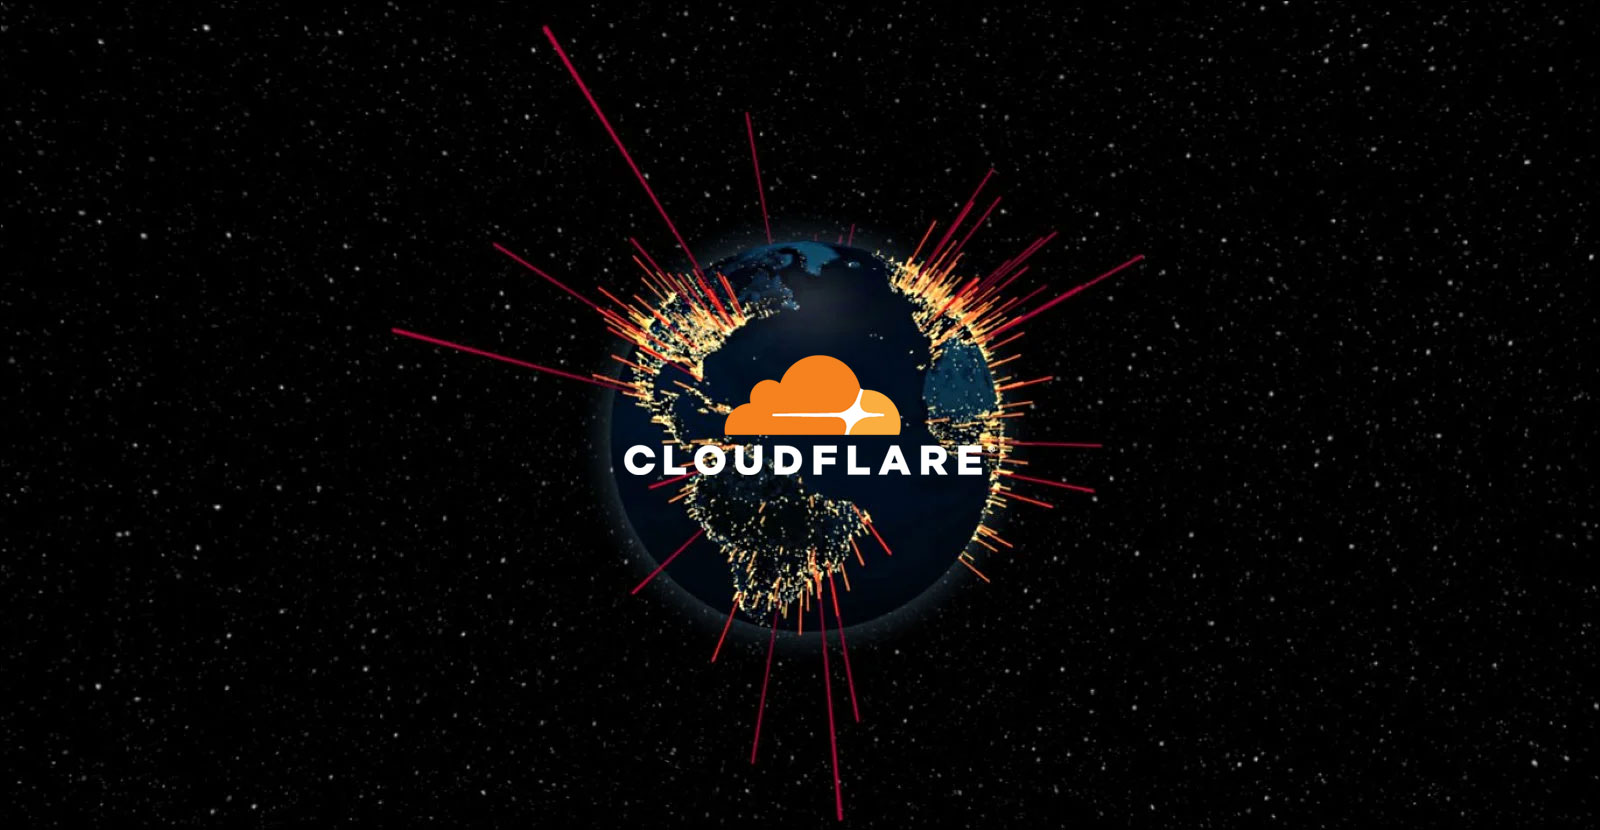 Critical Cloudflare CDN flaw allowed 12% of all sites to be compromised